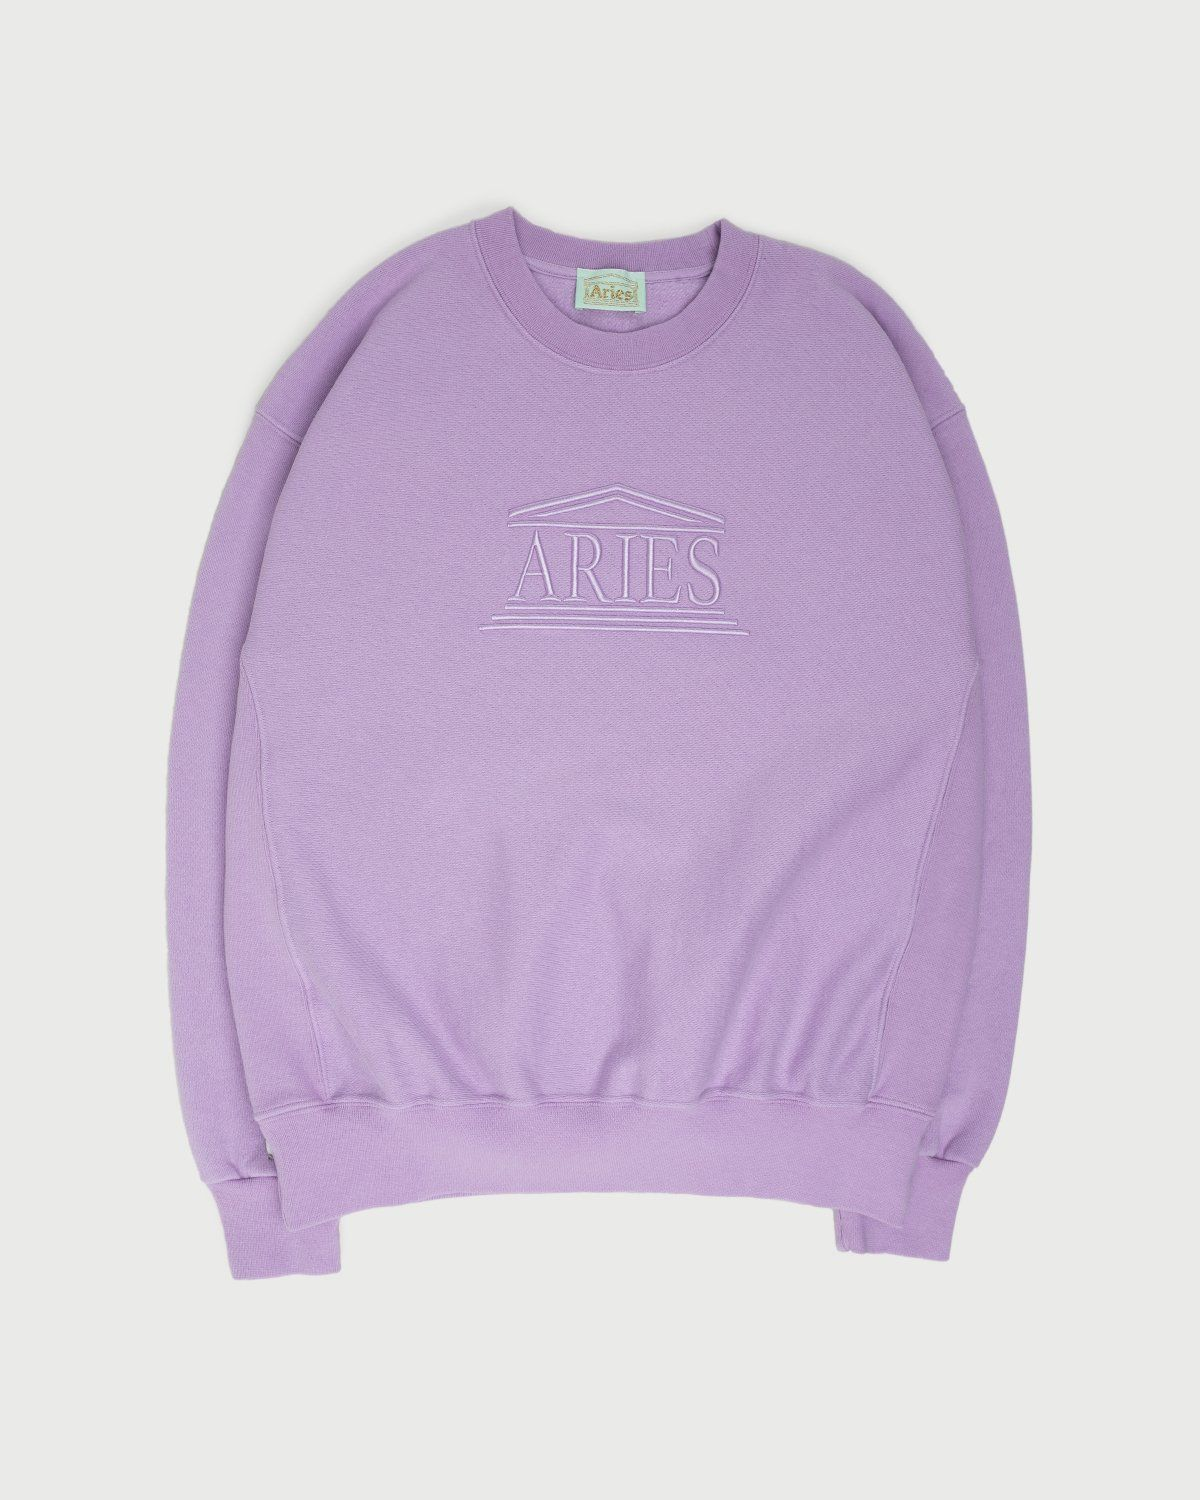 Aries - Embroidered Temple Sweatshirt Unisex Orchid - Image 1